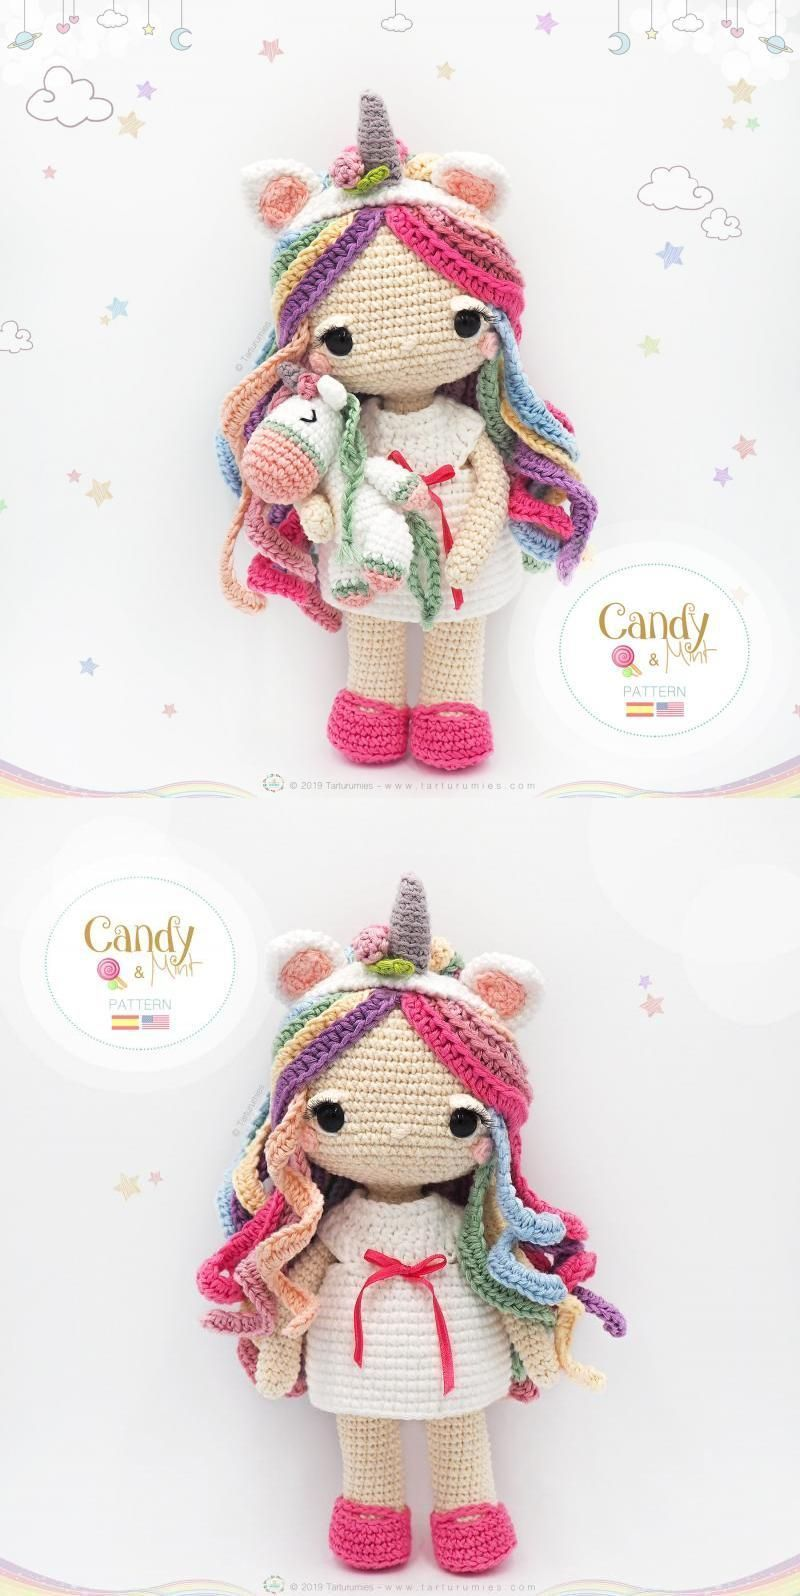 Amigurumi Unicorn Doll Tarturumies Crochet Pattern PDF Candy Mint Amigurumi Amigurumi Unicorn Doll Tarturumies Crochet Pattern PDF Candy  Amigurumi Unicorn Doll Tarturumies Crochet Pattern PDF Candy Mint Amigurumi Amigurumi Unicorn Doll Tarturumies Crochet Pattern PDF Candy  My Blog Save Images My Blog Amigurumi Unicorn Doll Tarturumies Crochet Pattern PDF Candy Mint Amigurumi Amigurumi Unicorn Doll Tarturumies Croch